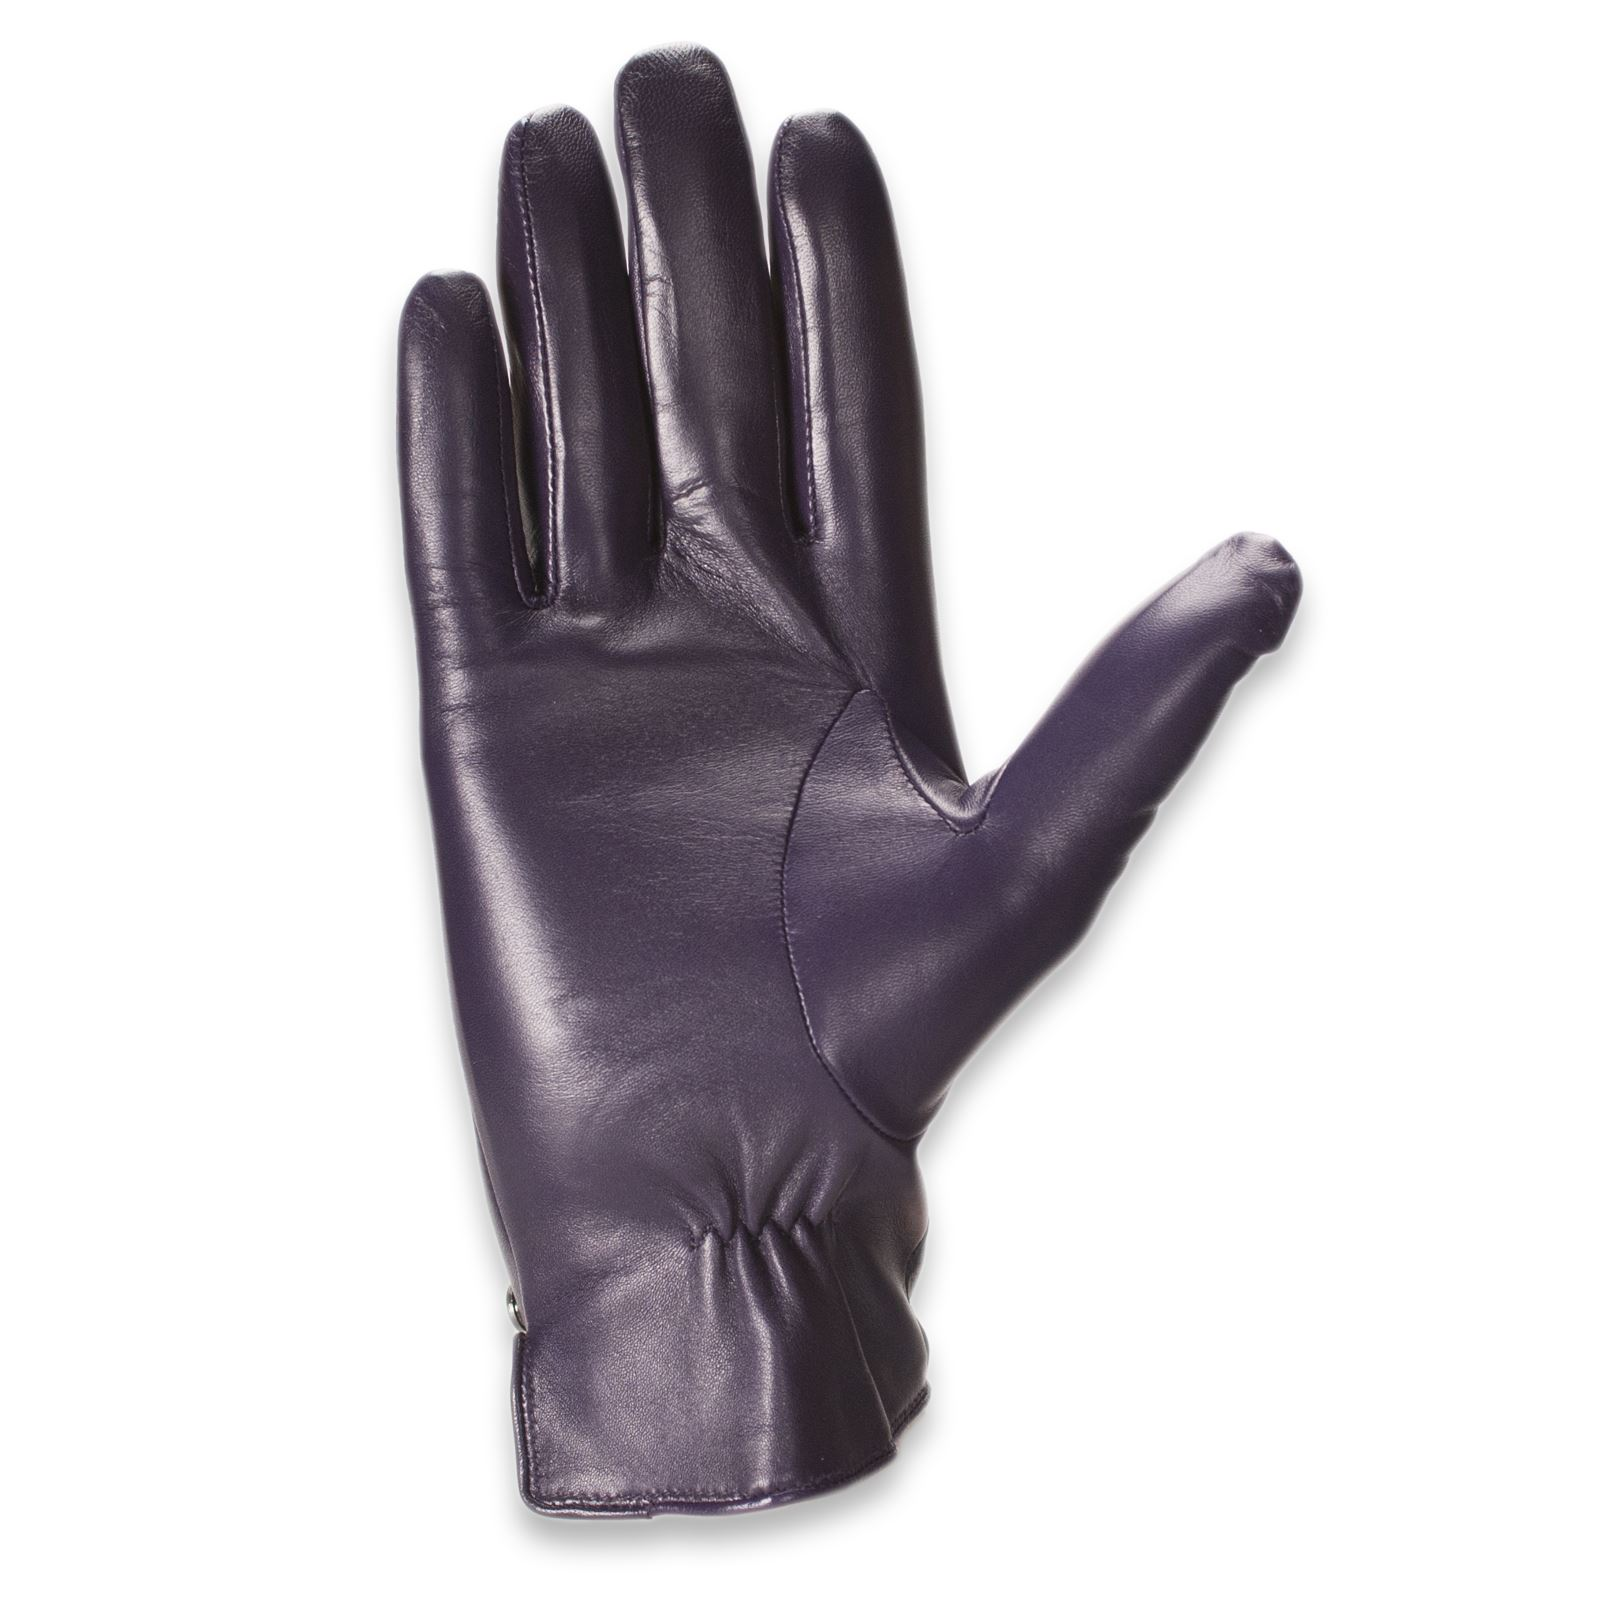 Womens leather gloves purple - Quivano Womens Leather Gloves Fleece Lined Ladies Genuine